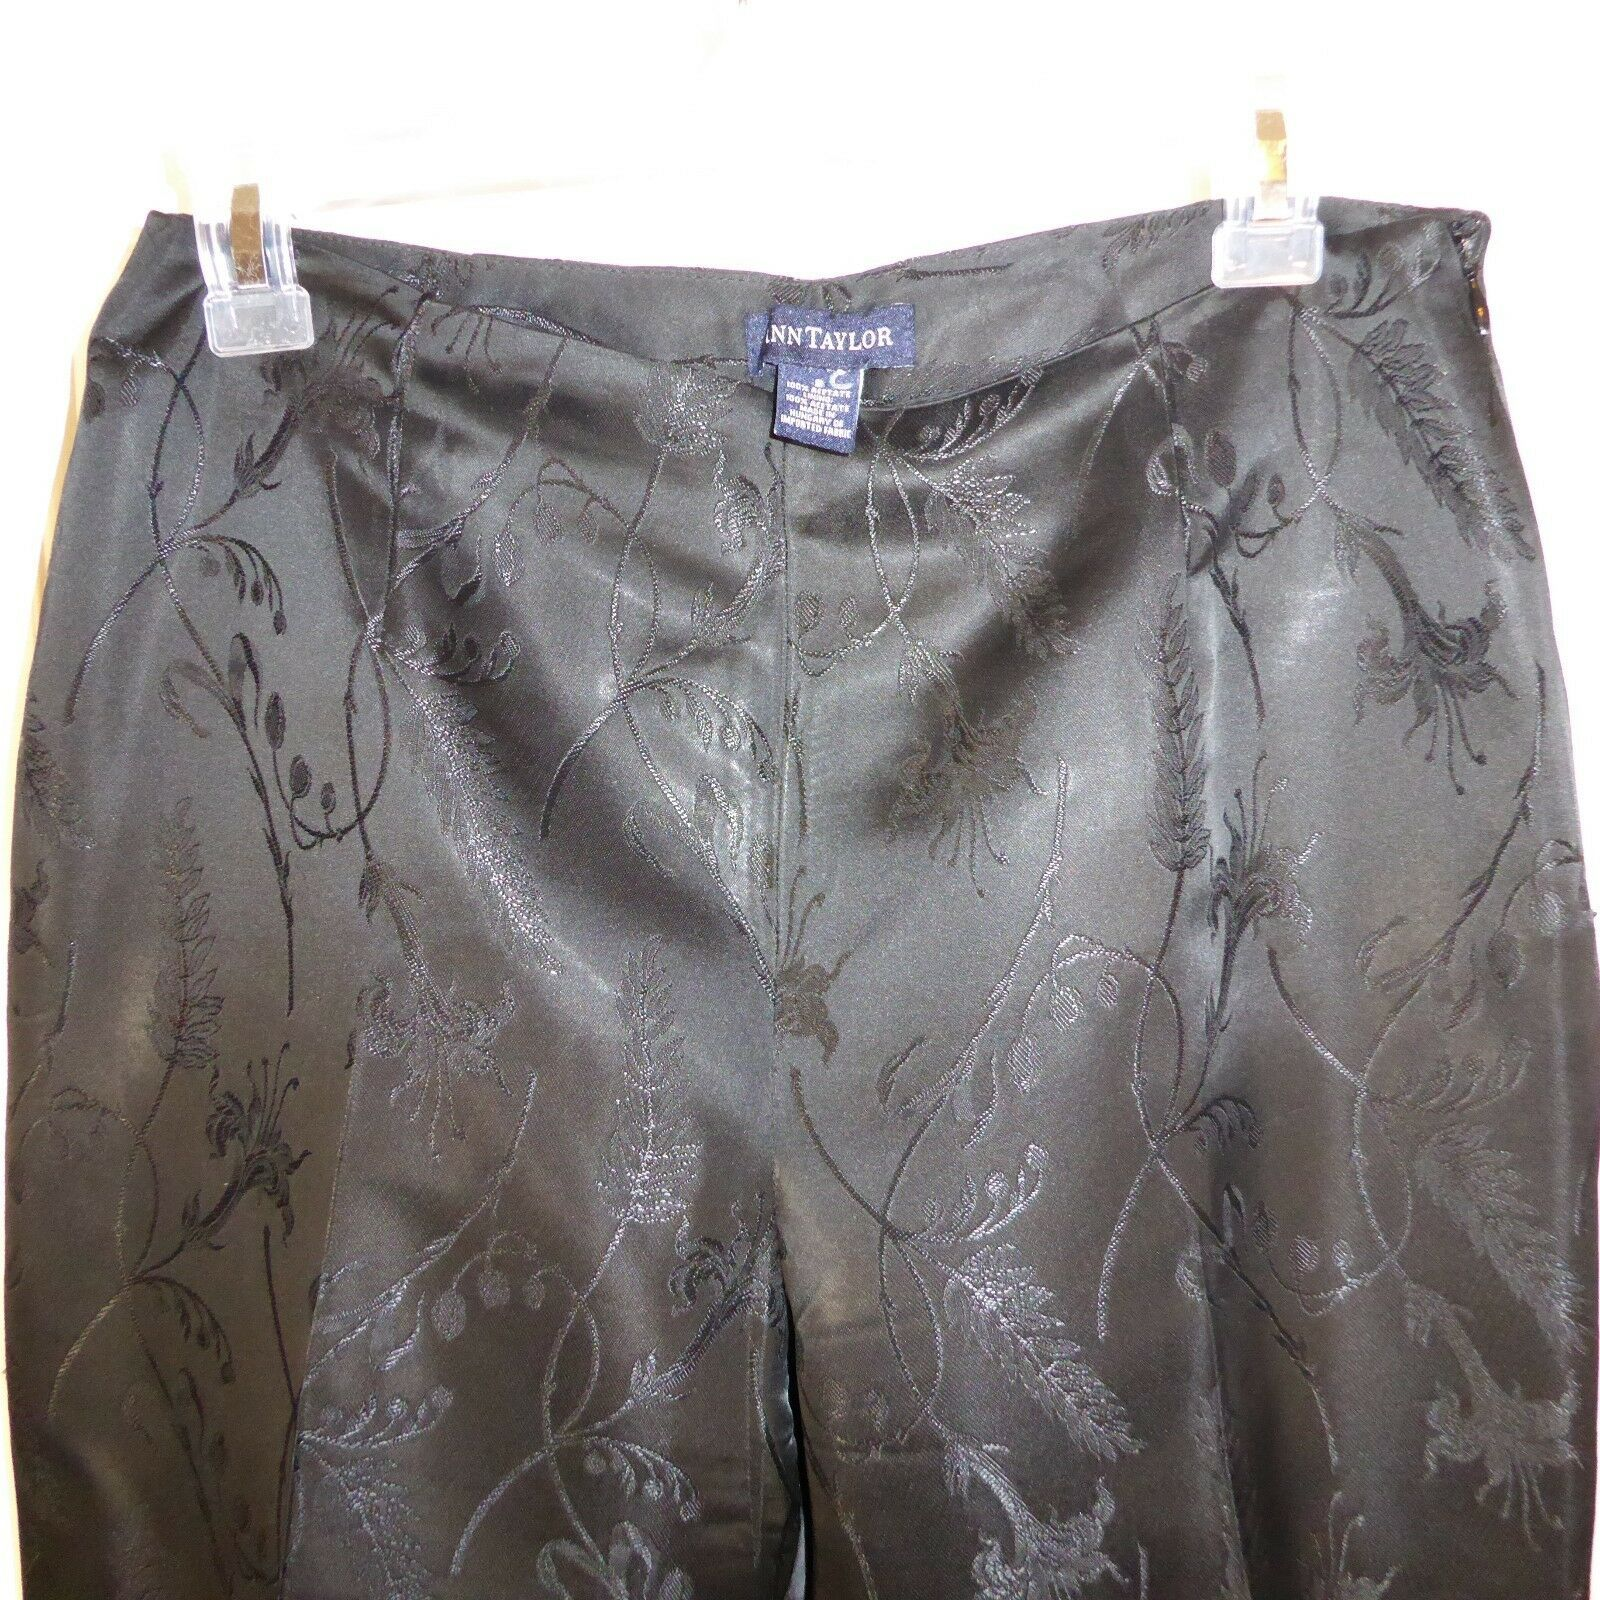 Primary image for Ann Taylor Black Acetate Classy Fully Lined FLoral Design Pants Size 8